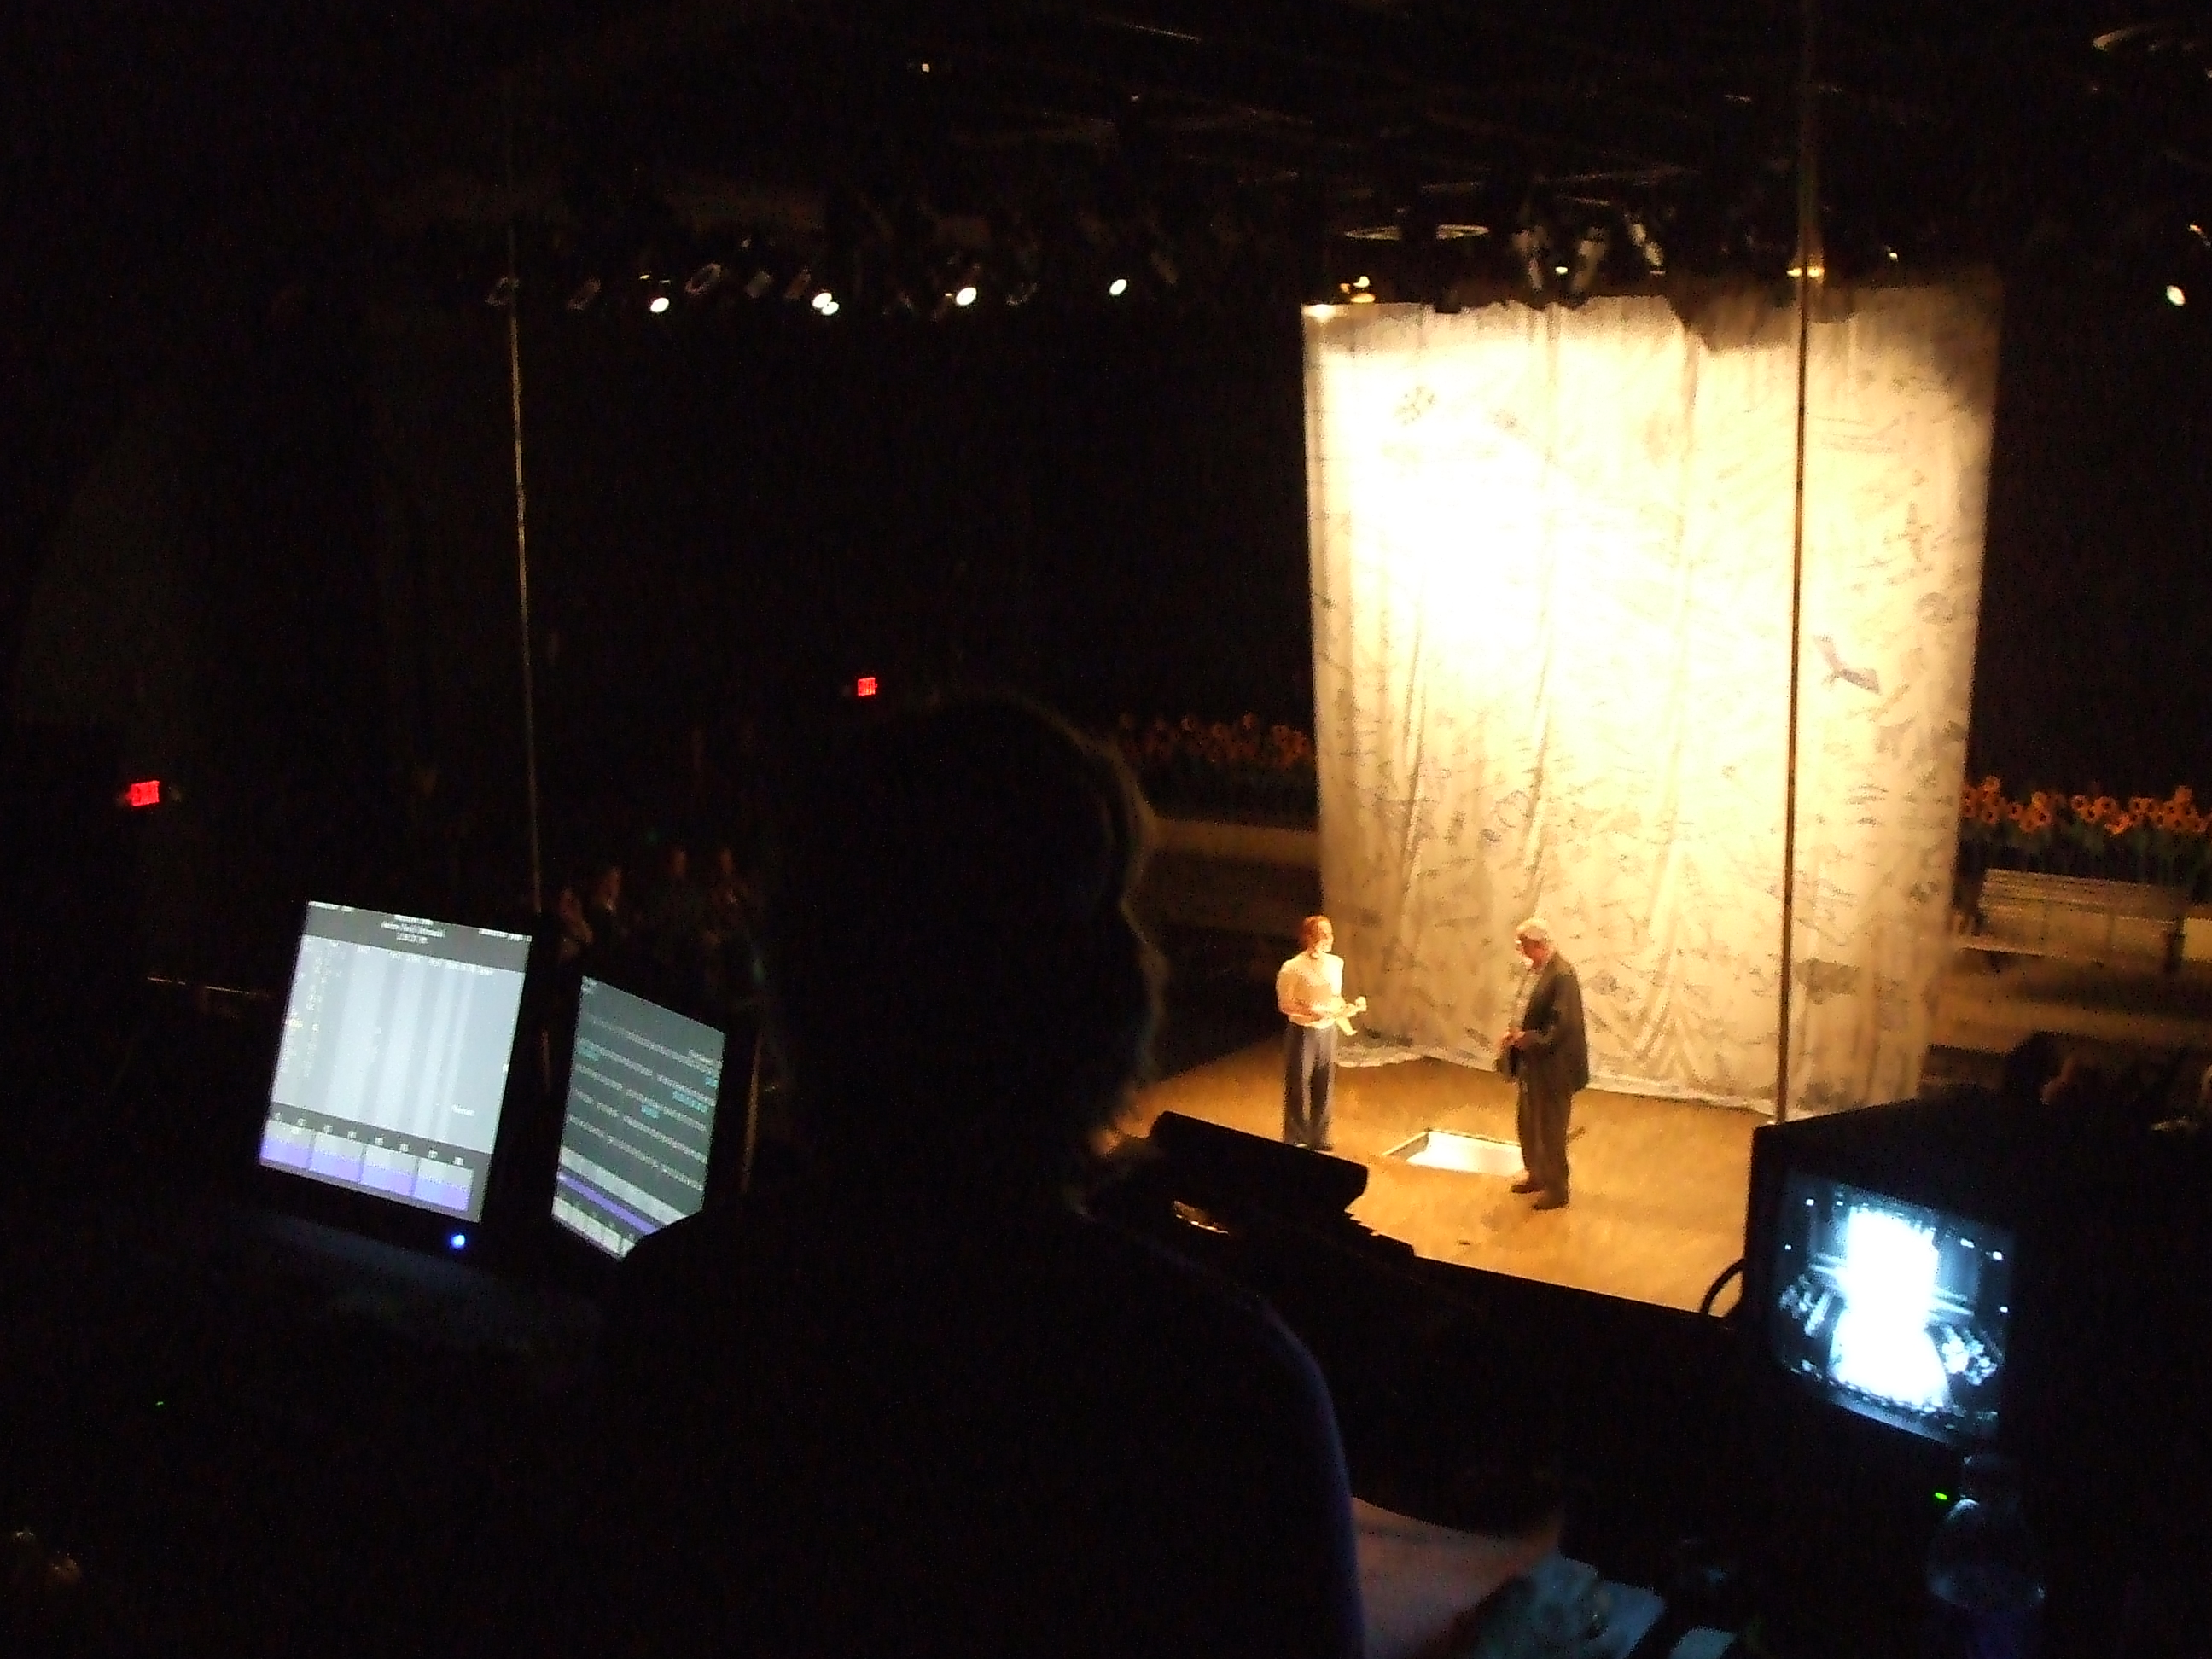 Bikini Claire Rankin naked (31 photo) Erotica, Snapchat, bra